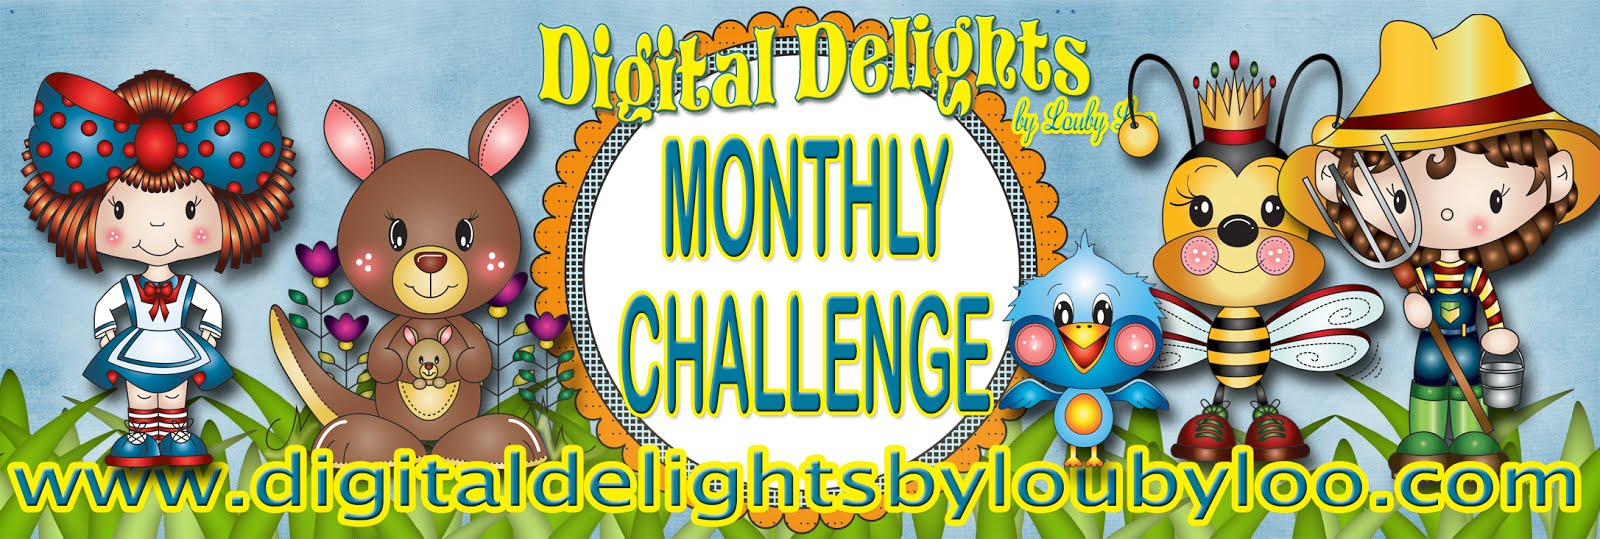 Digital Delights by Louby Loo Tips